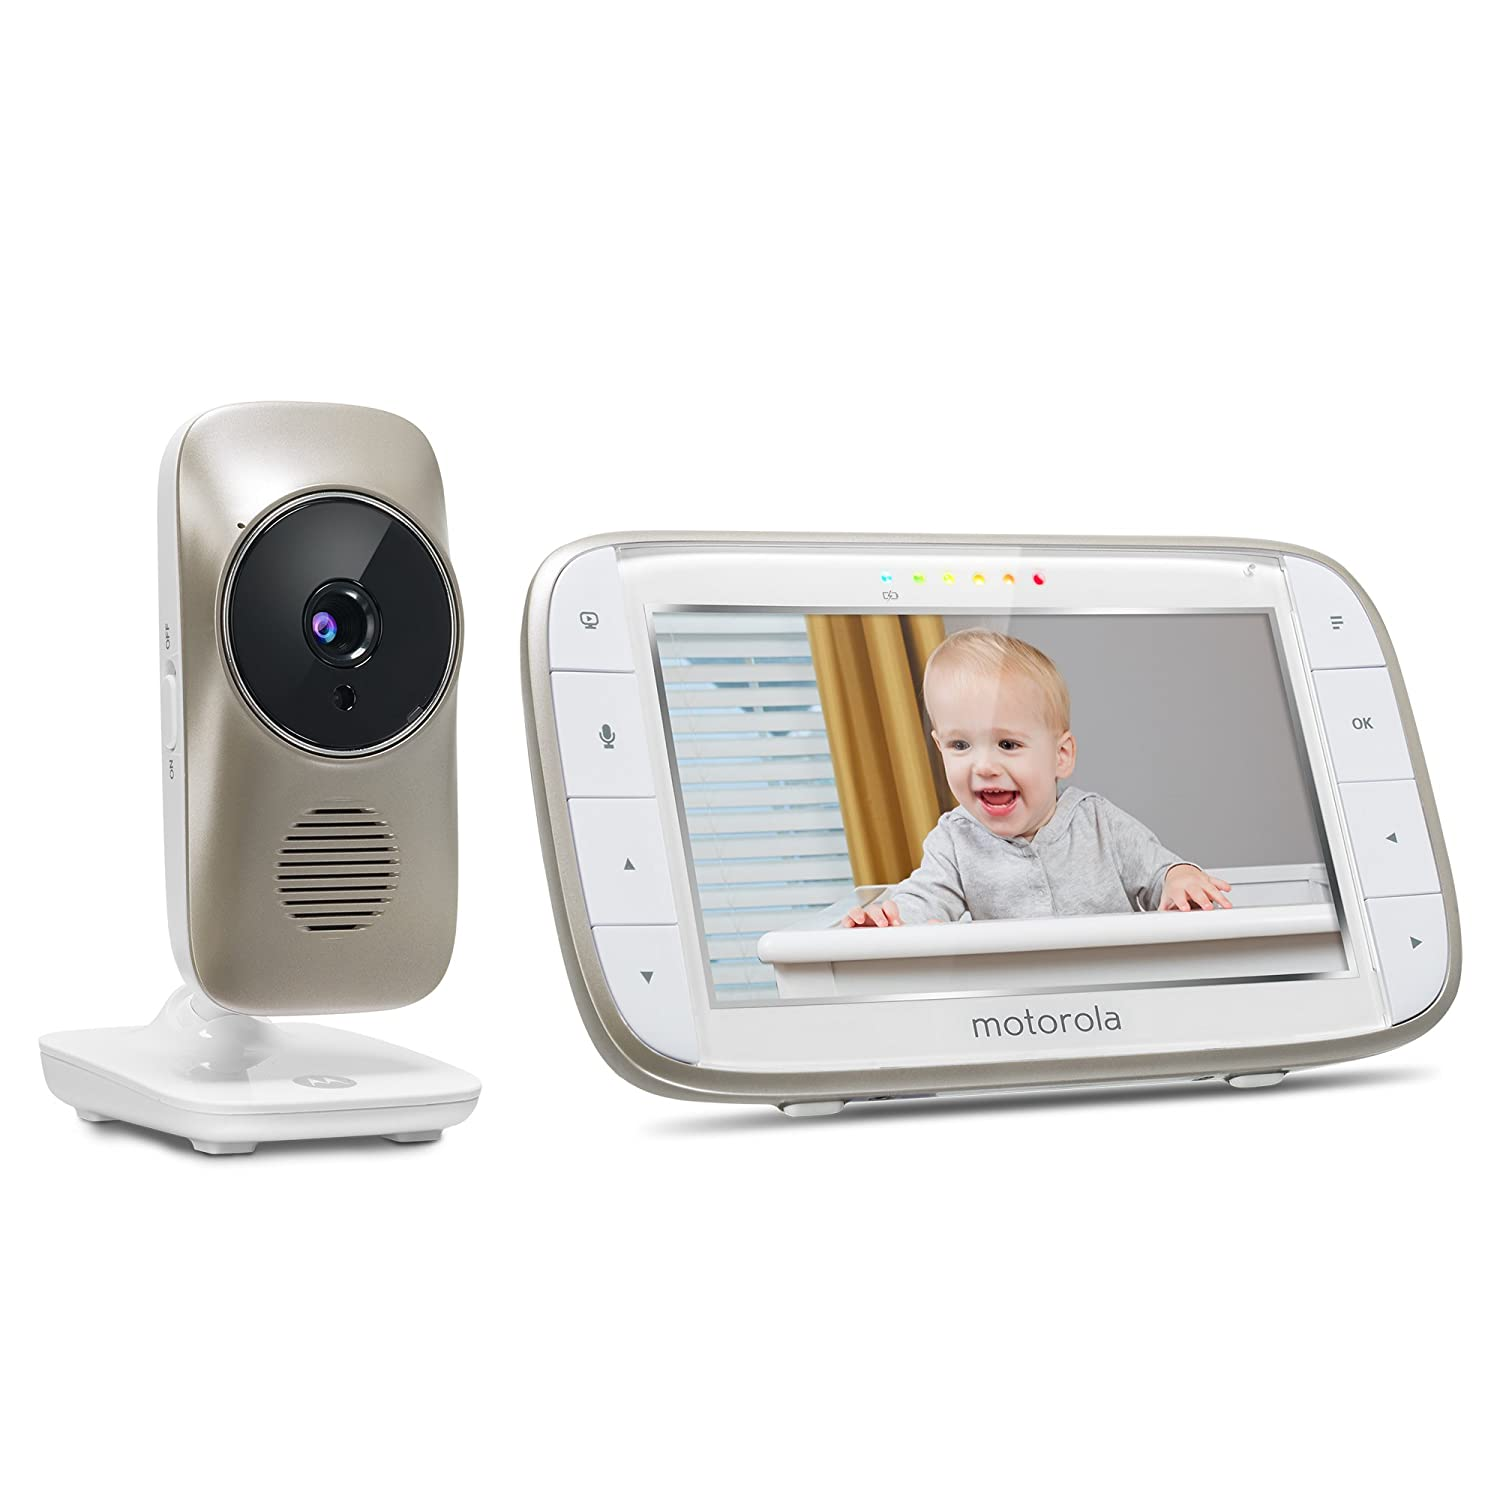 Two-Way Audio and Room Temperature Display Motorola MBP845CONNECT 5 Video Baby Monitor with Wi-Fi Viewing Digital Zoom